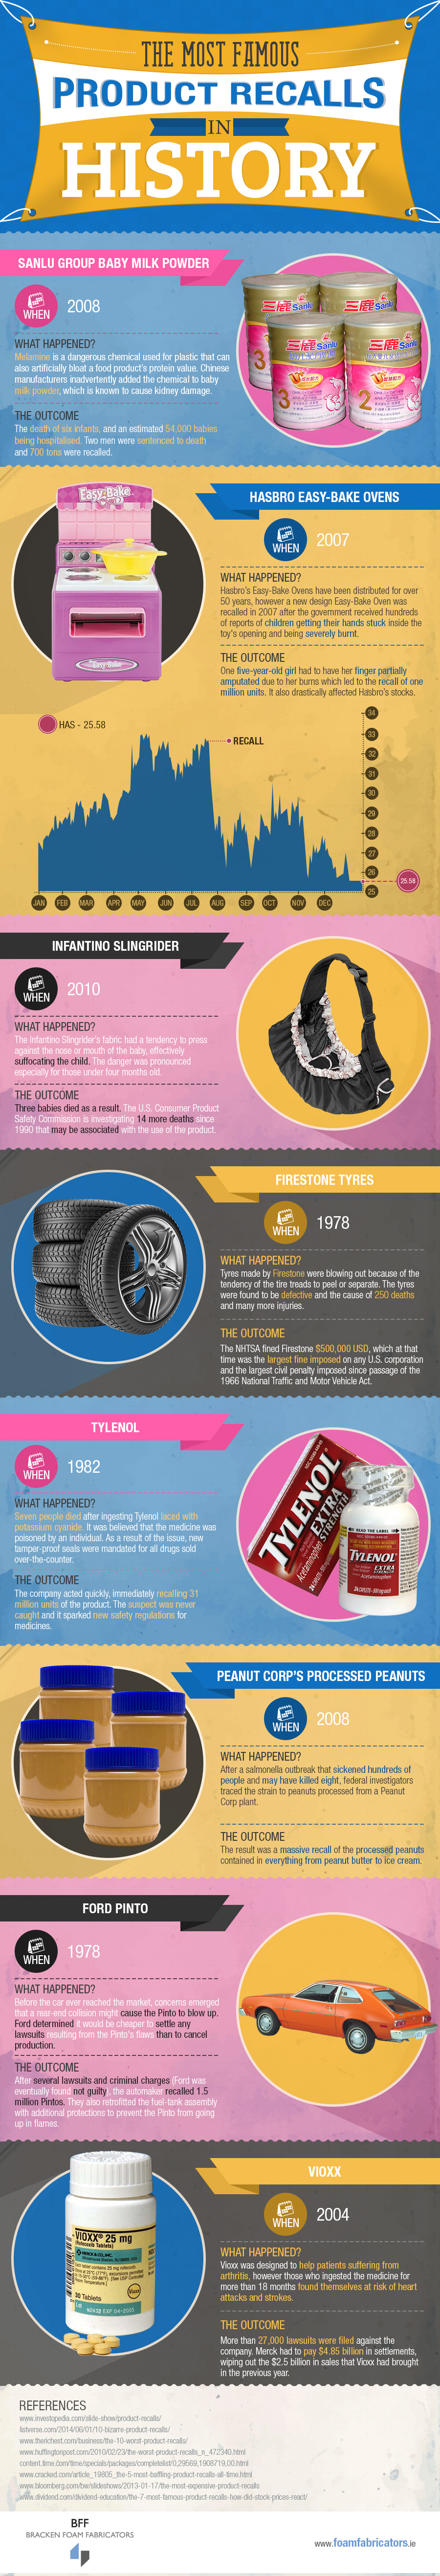 The Most Famous Product Recalls in History